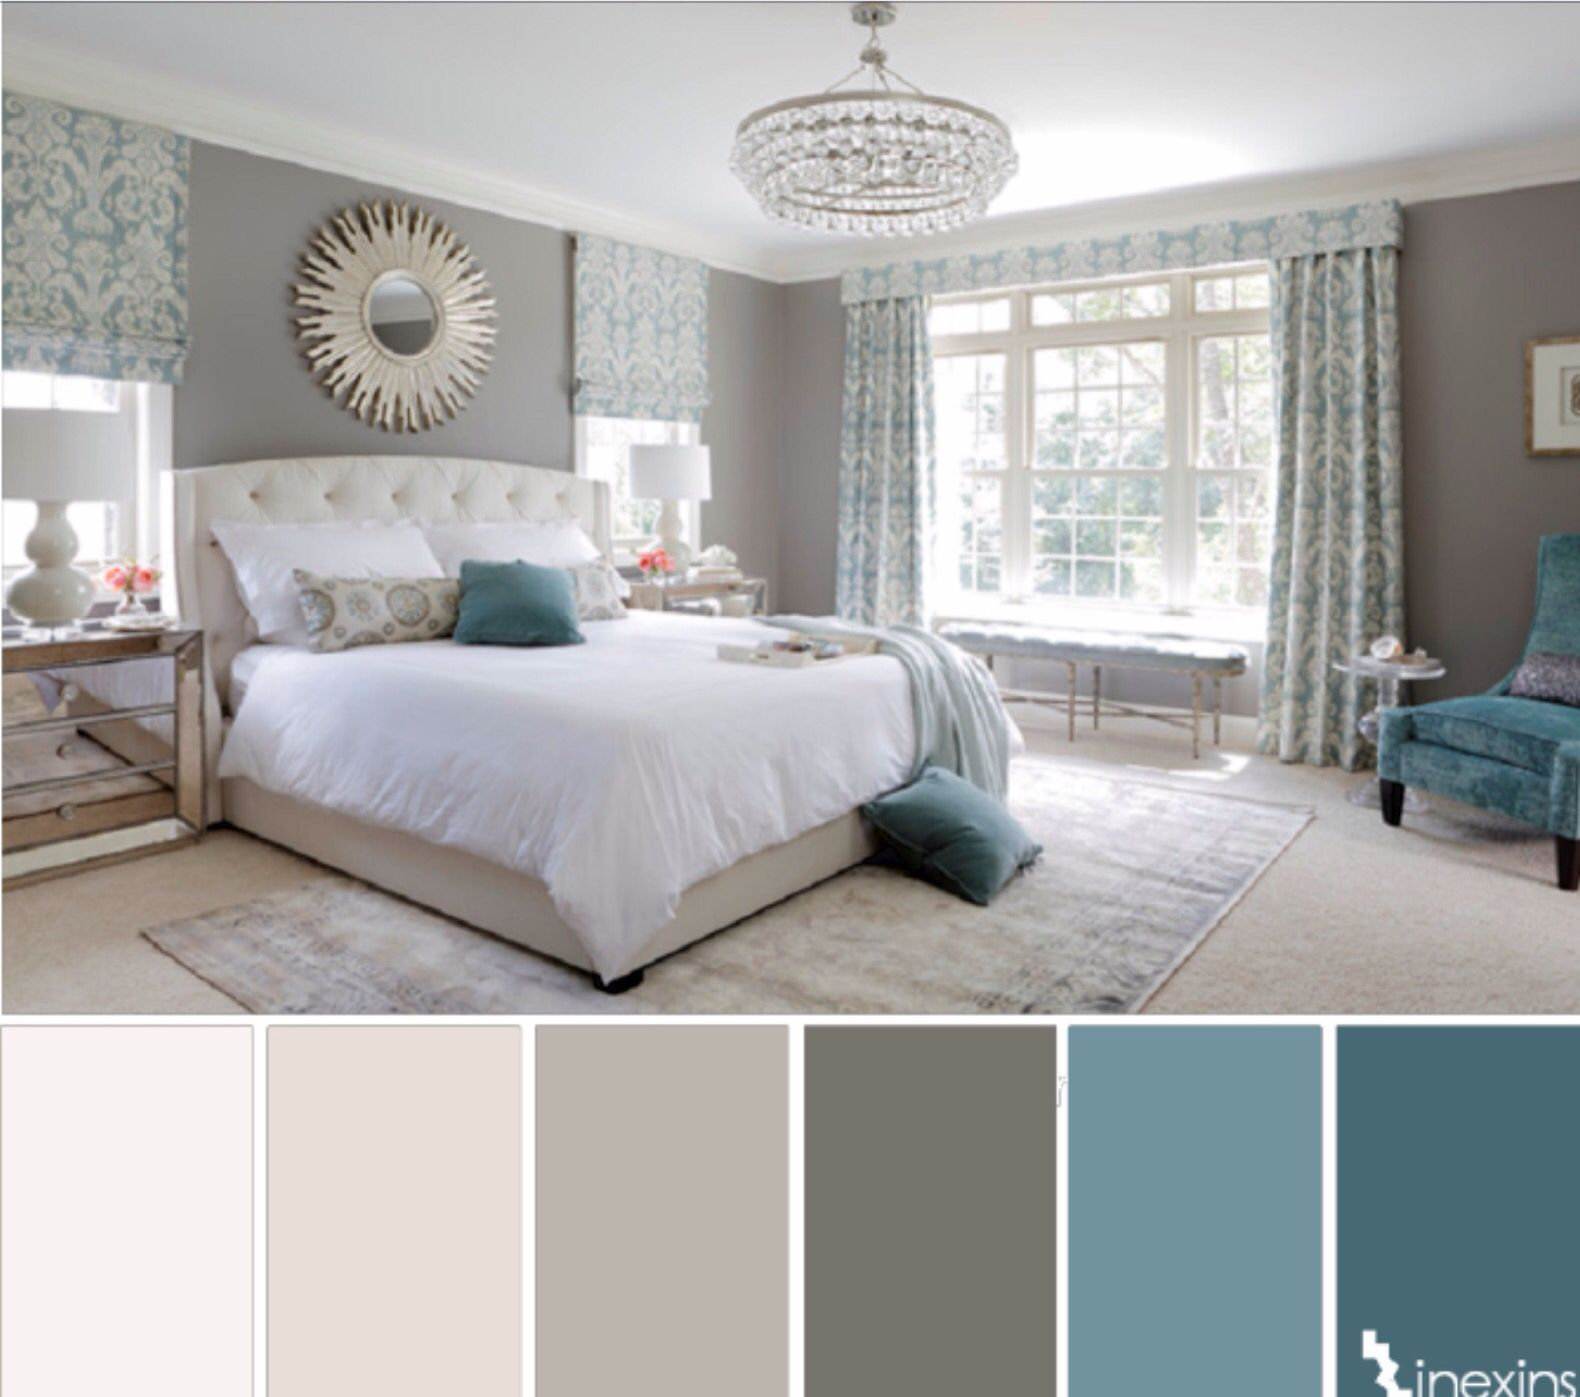 5 Beautiful Accent Wall Ideas To Spruce Up Your Home: 7 Ways To Use Duck Egg Blue To Spruce Up Your Living Room